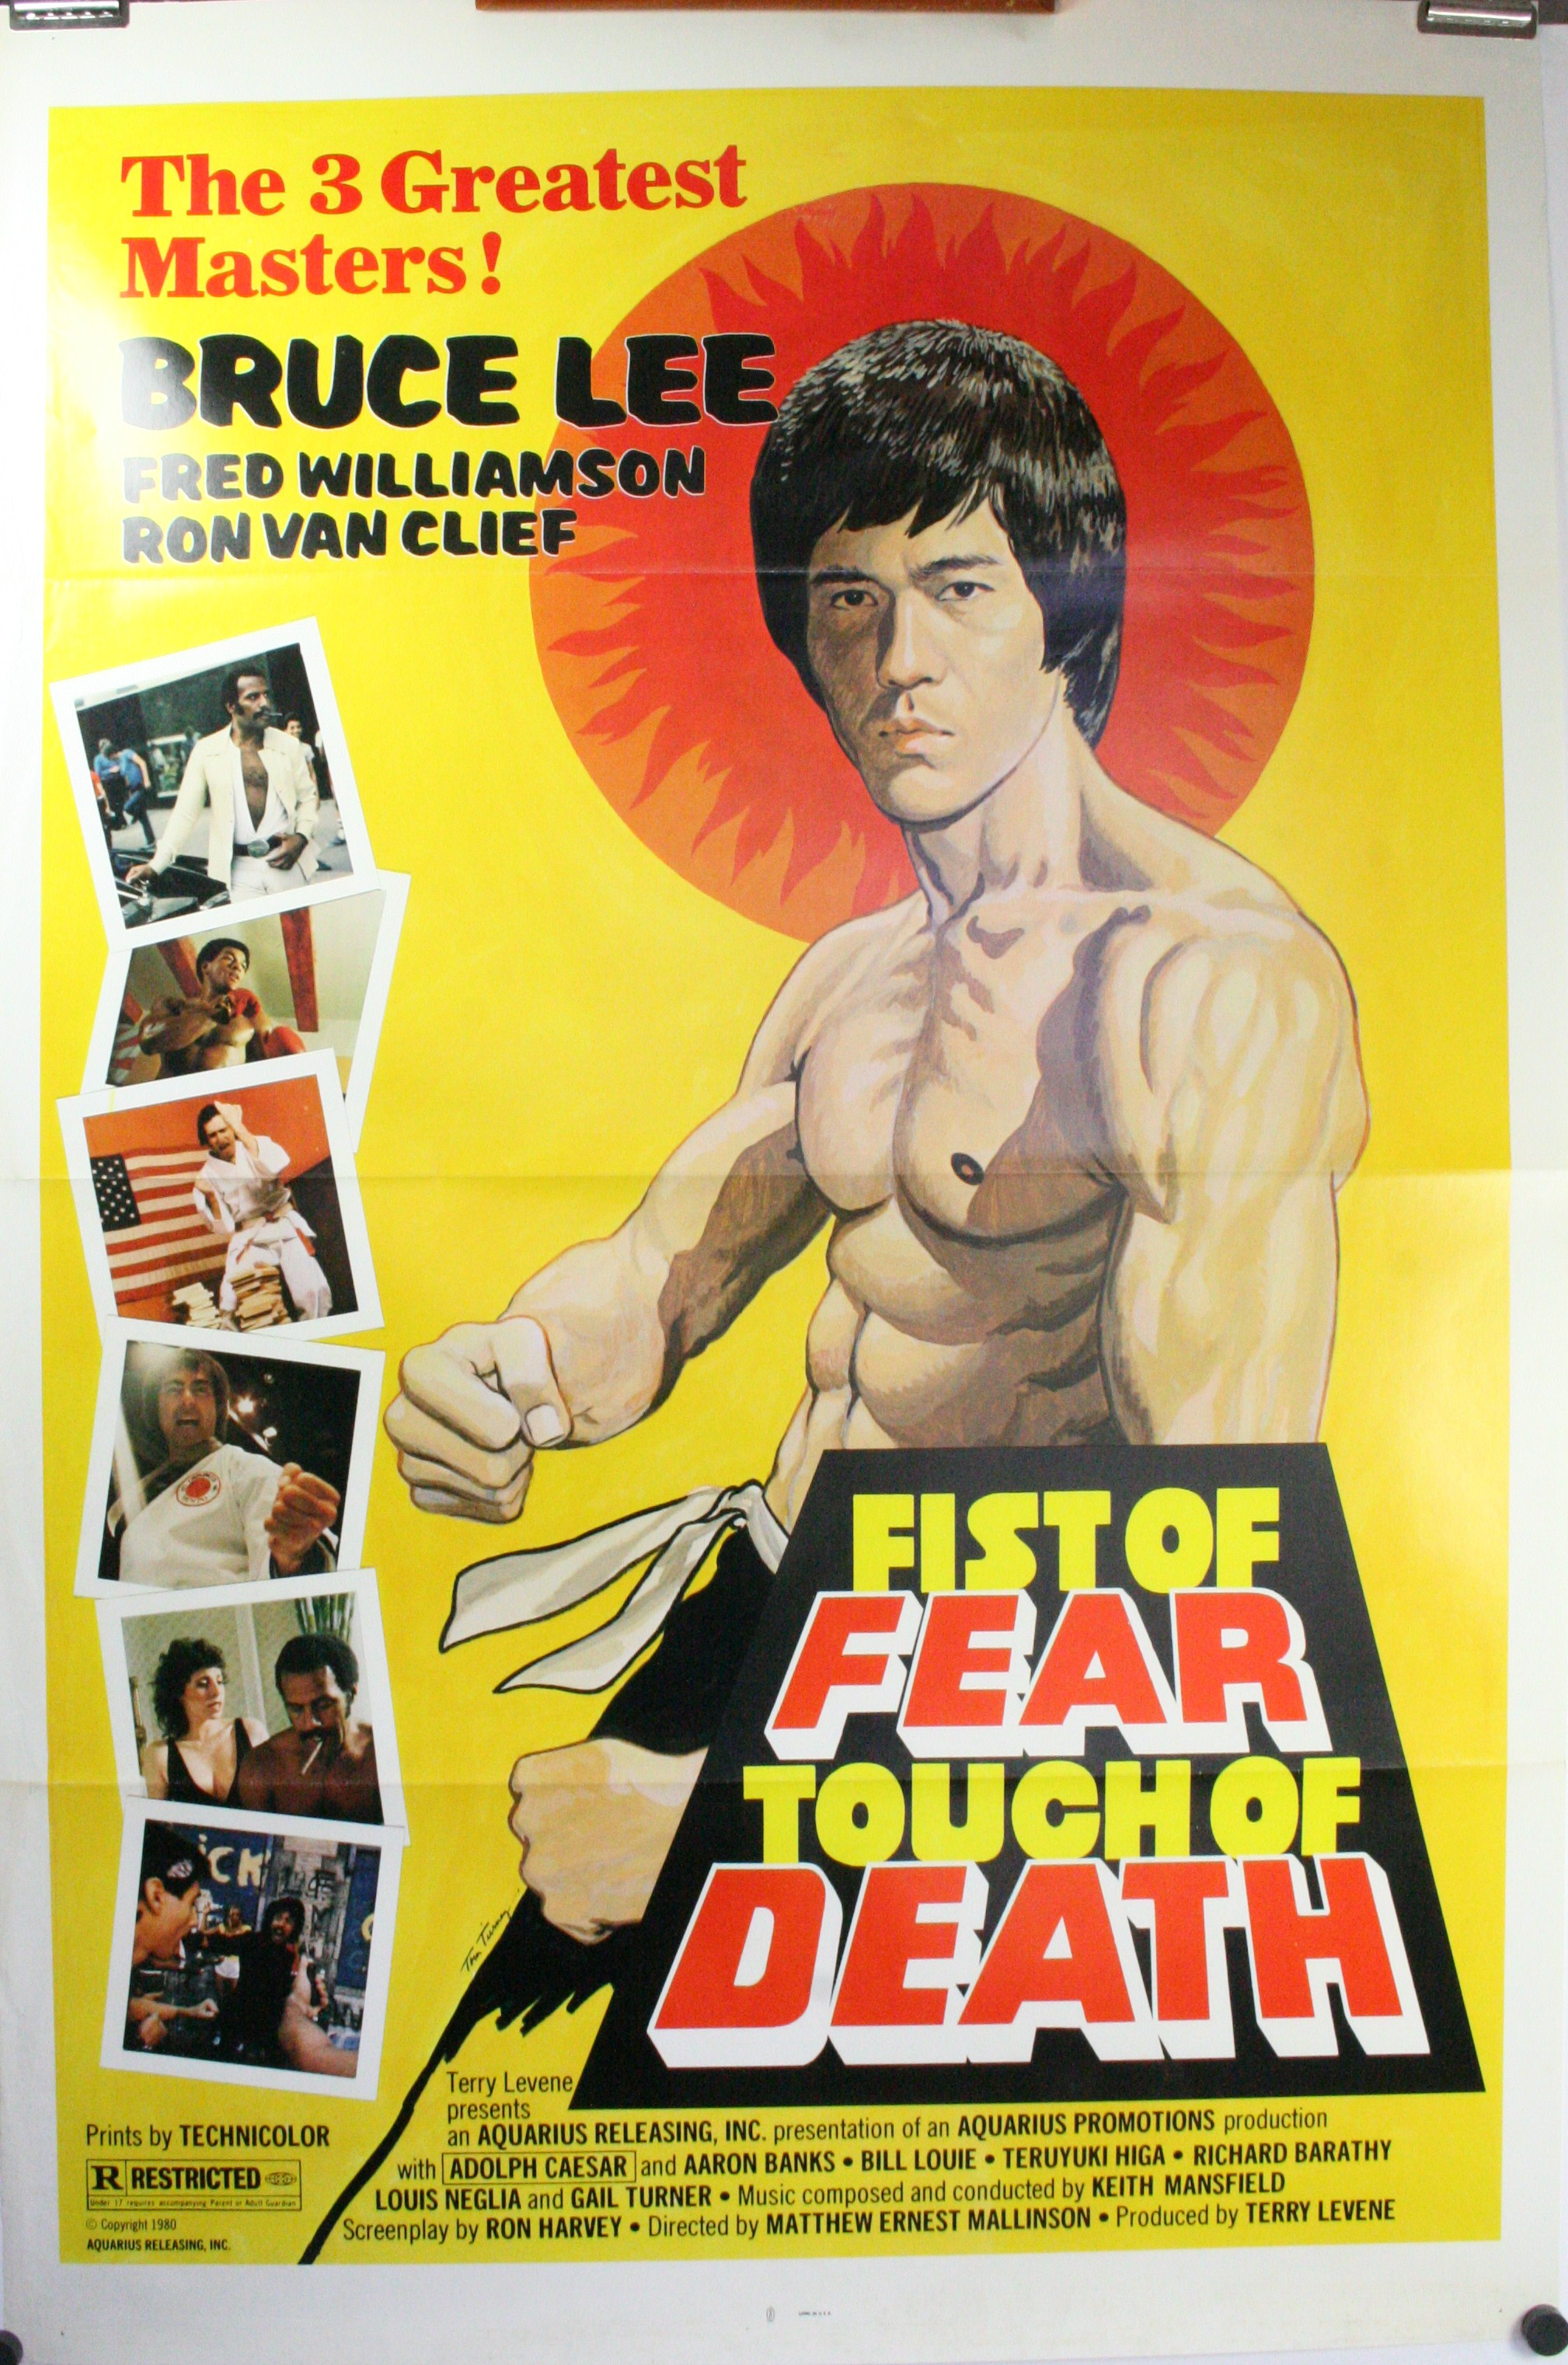 fist of fear touch of death bruce lee fred williamson